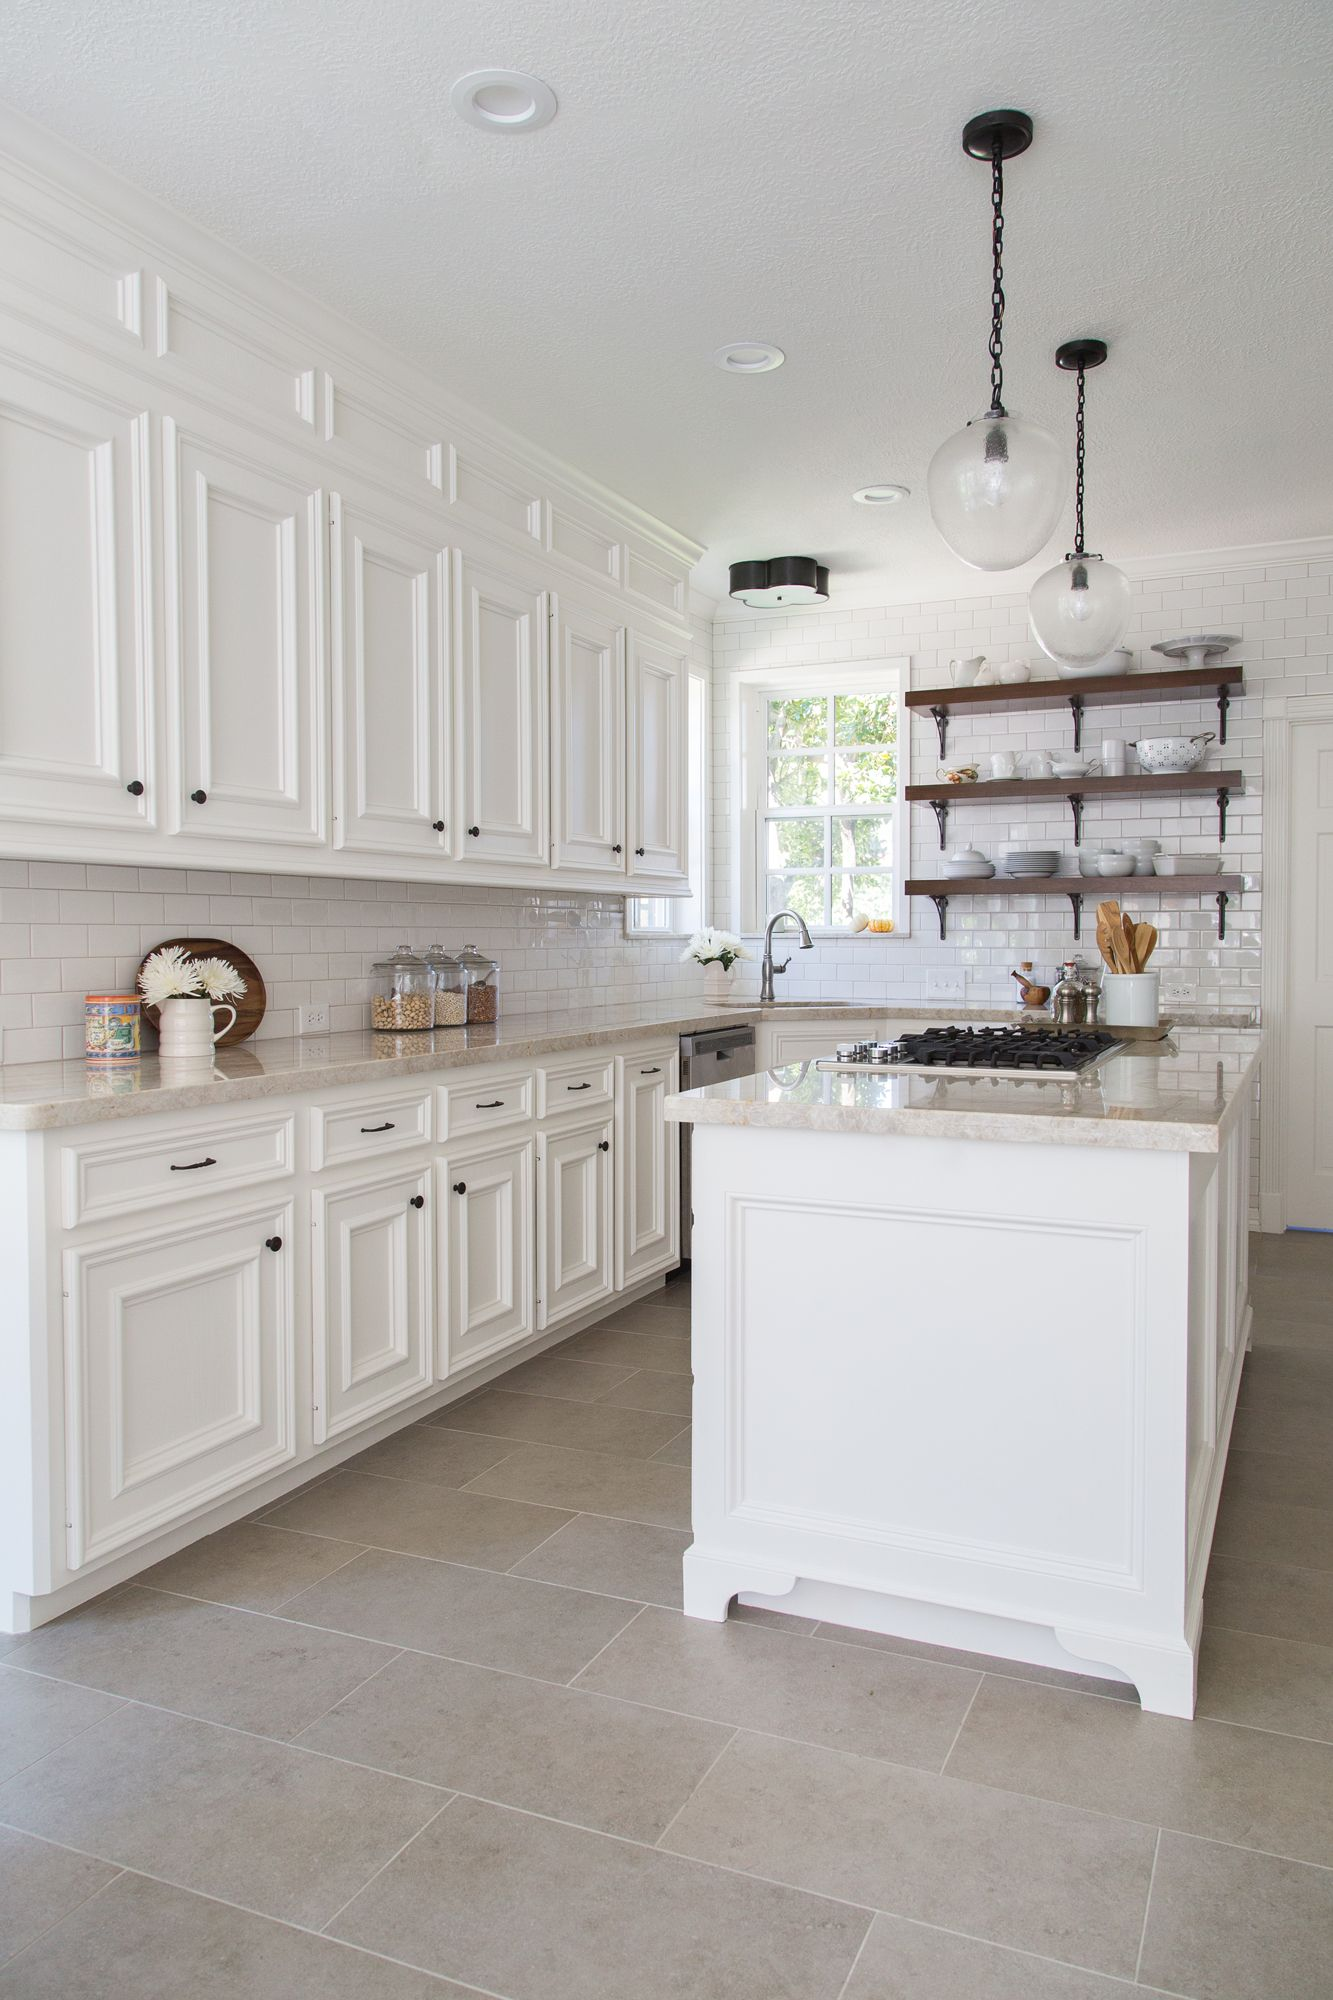 Before after a dark dismal kitchen is made light and bright farmhouse kitchen remodel interior designer carla aston photographer tori aston tile kitchen floorskitchen dailygadgetfo Gallery